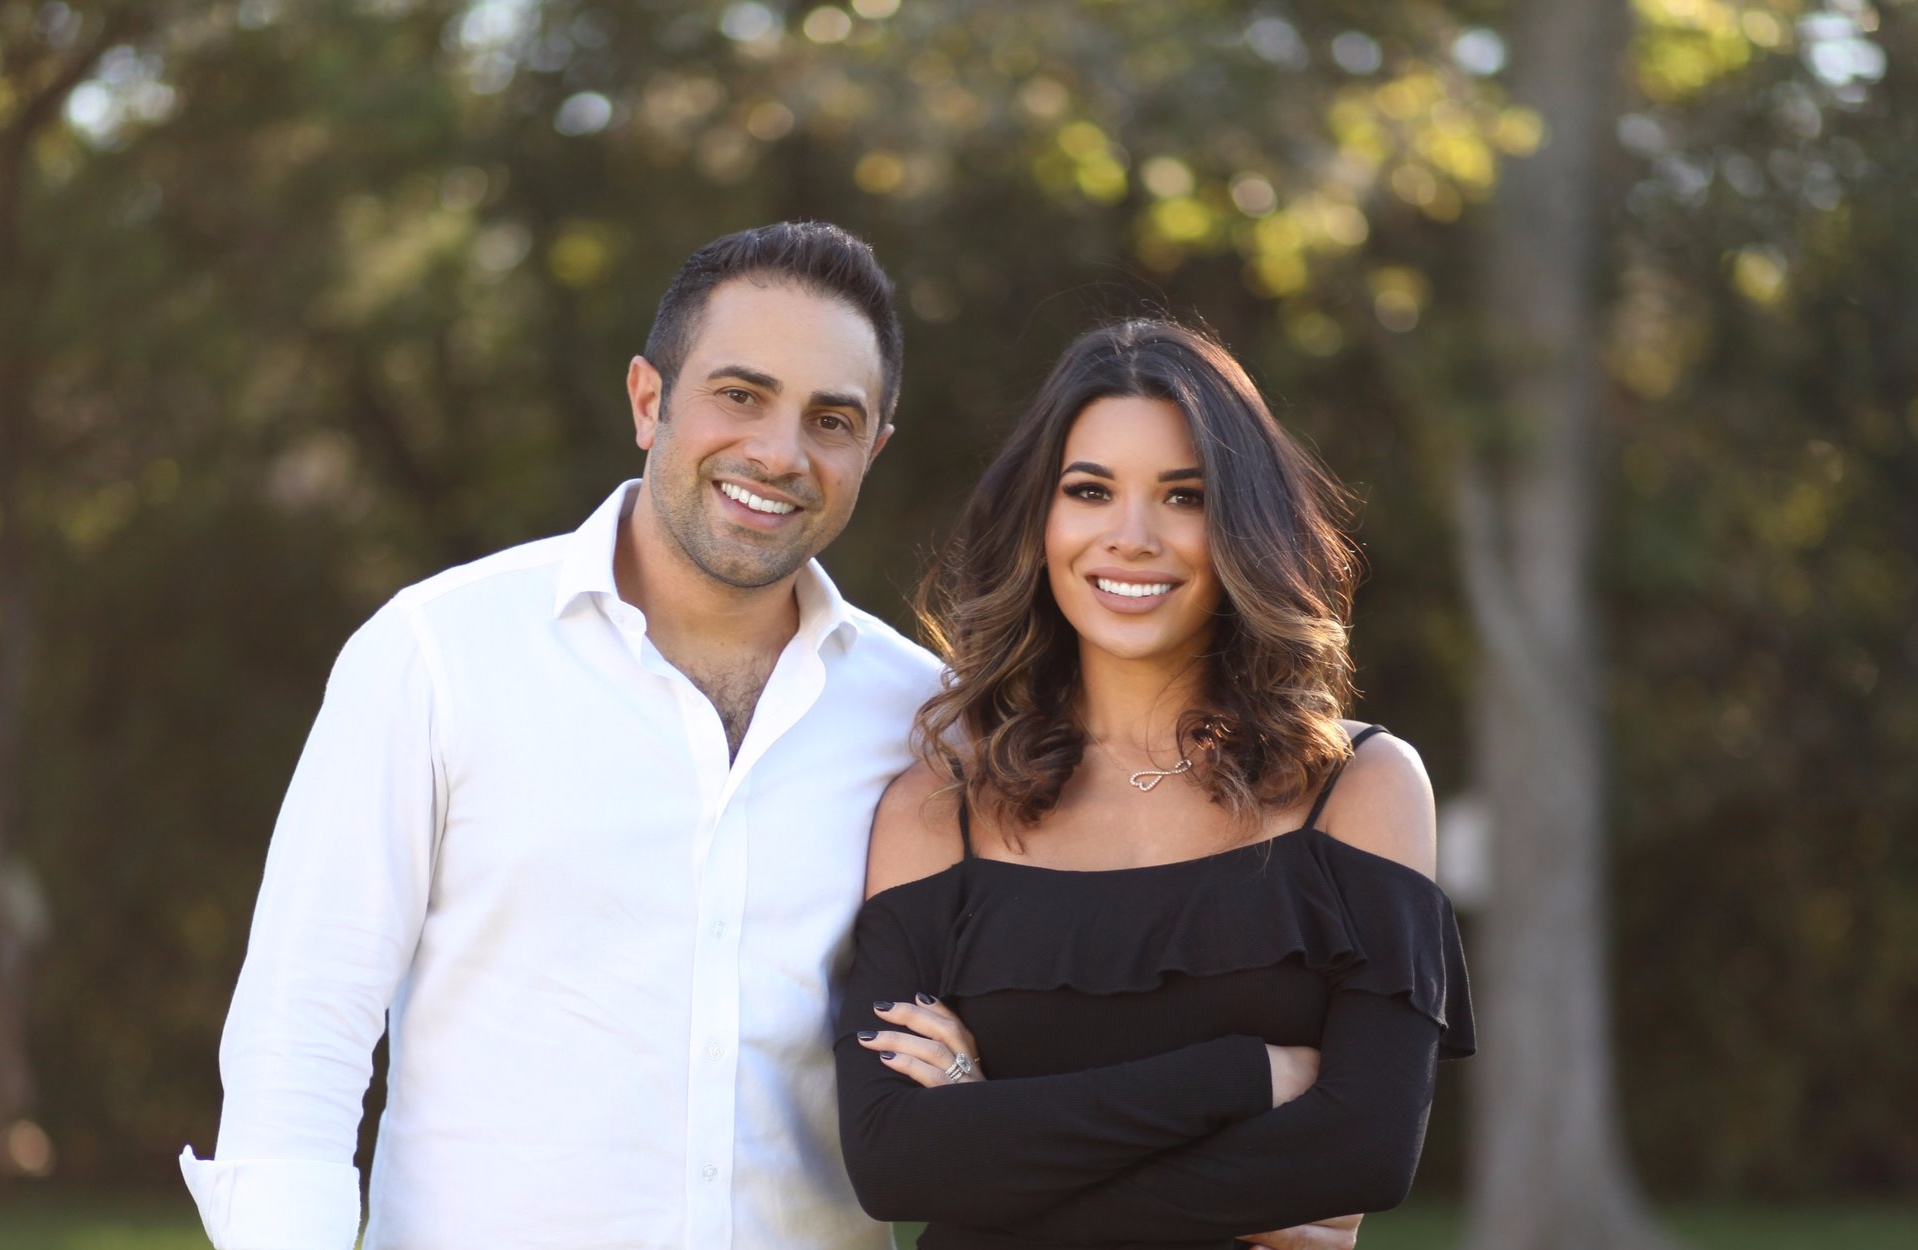 Founders, Michael and Ylianna Dadashi